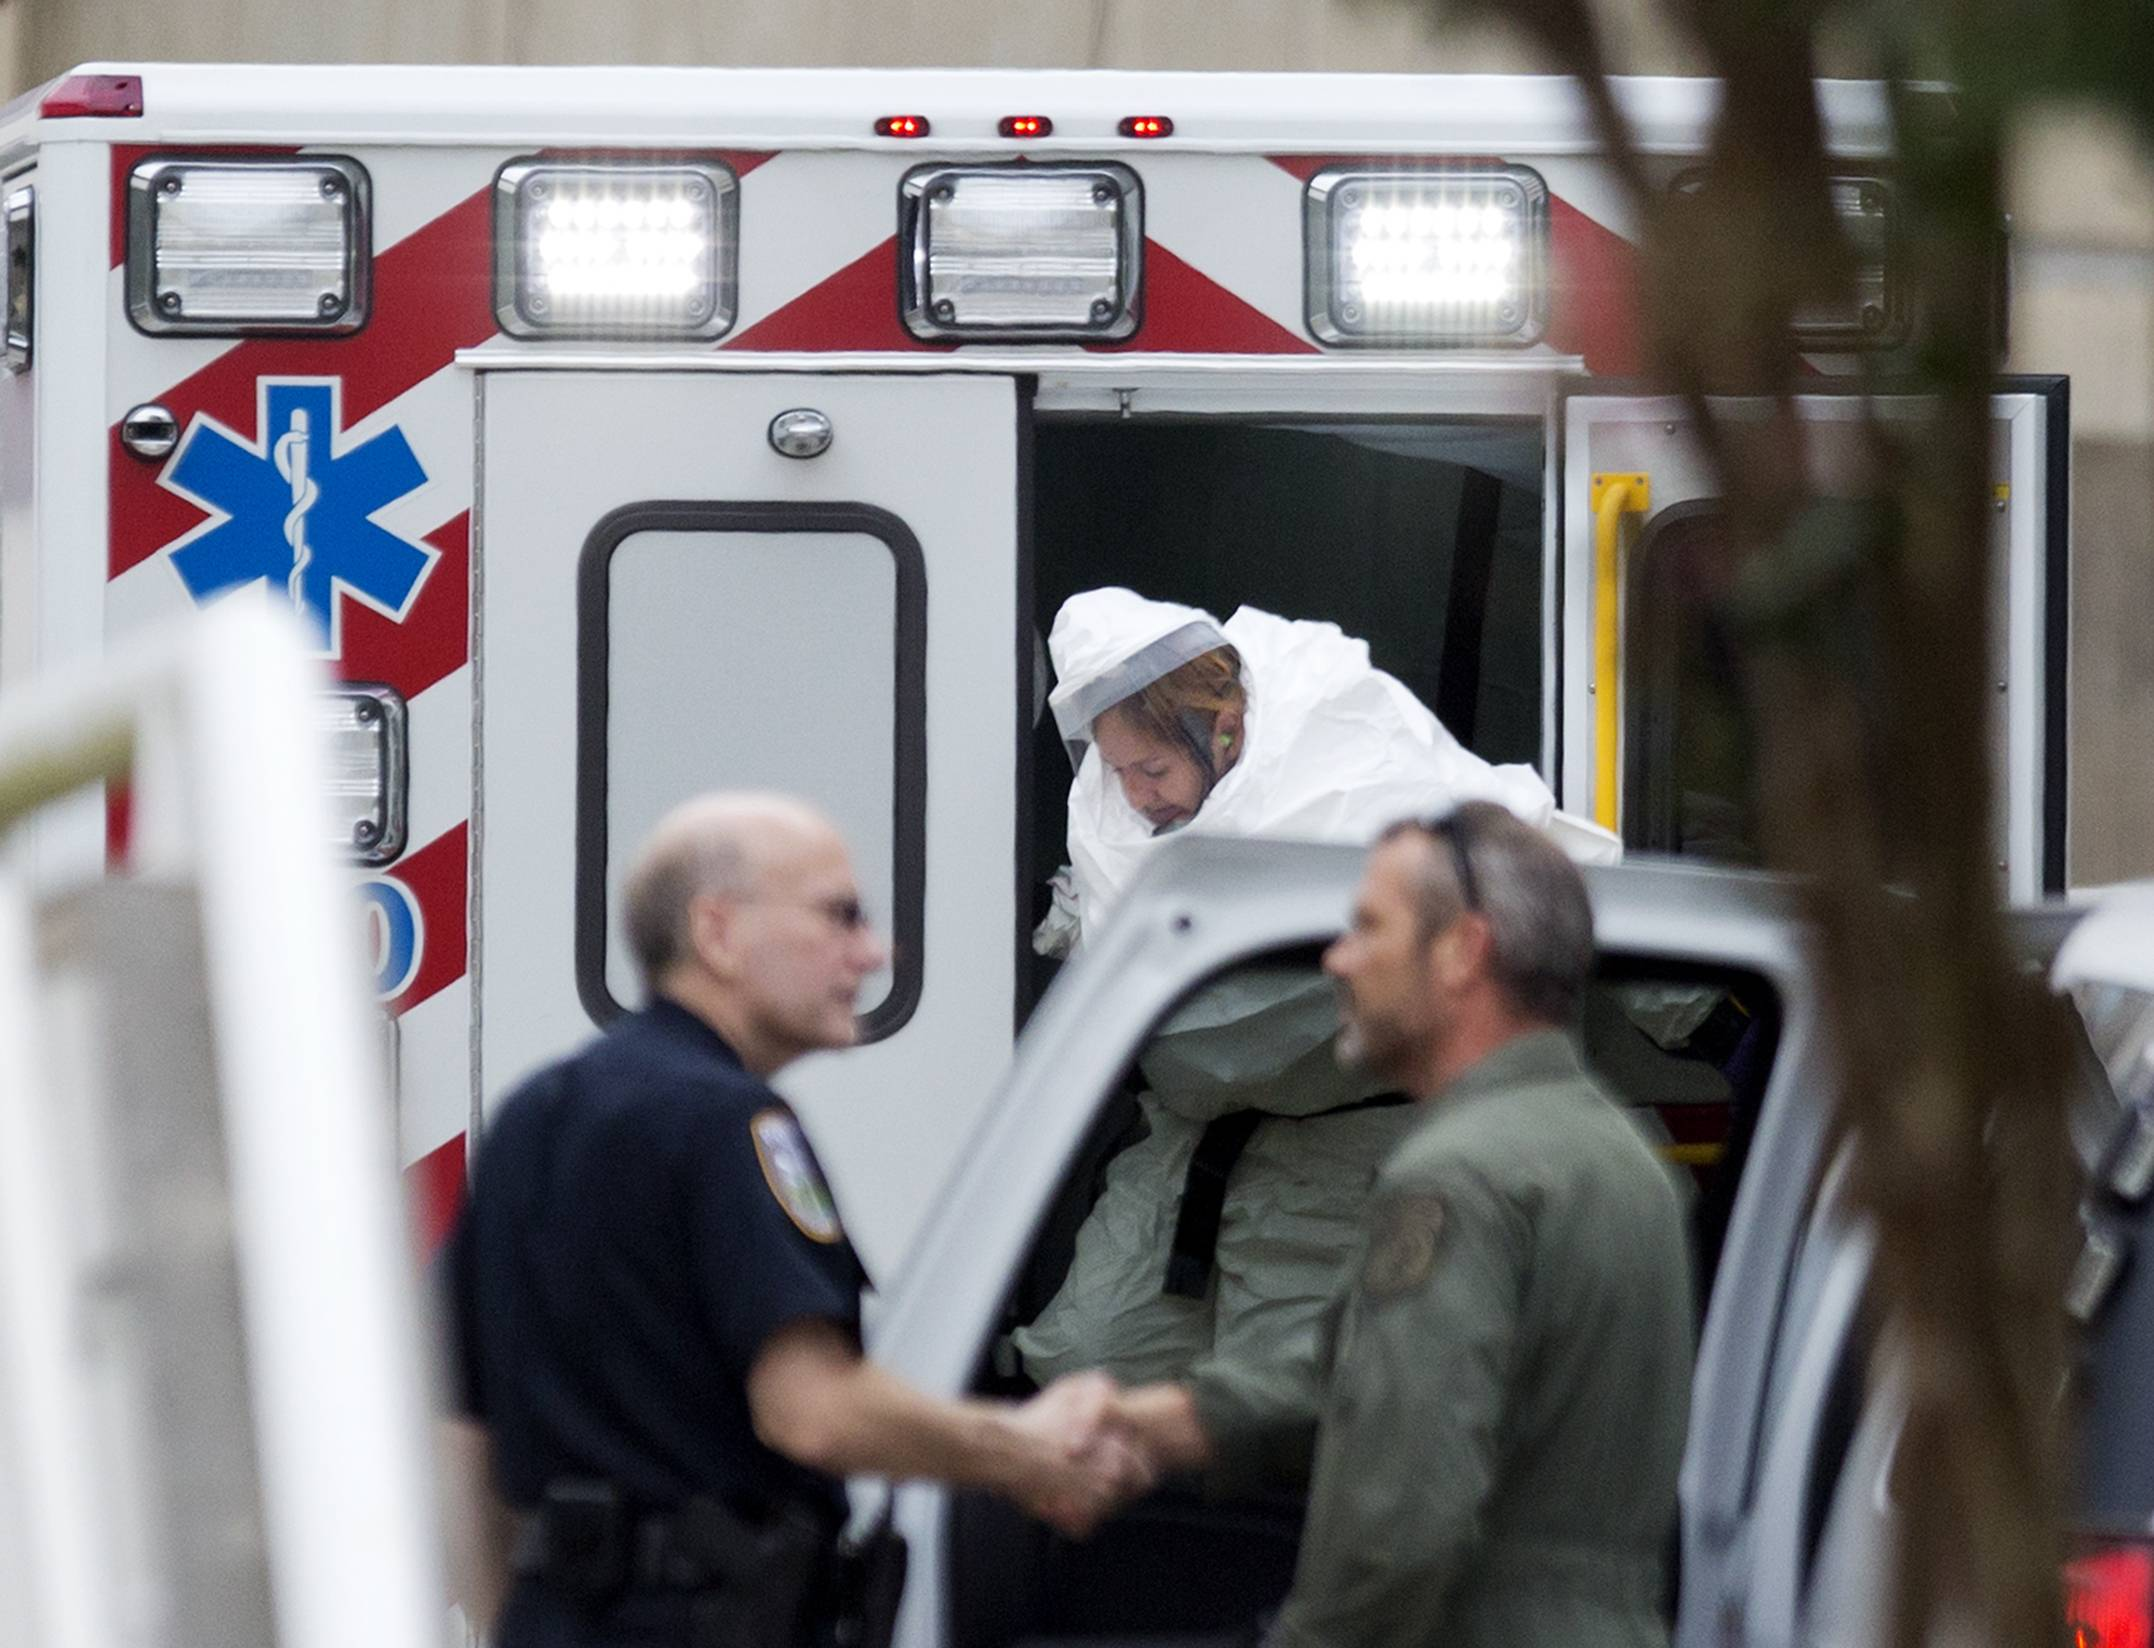 Another US aid worker with Ebola arrives in Atlanta